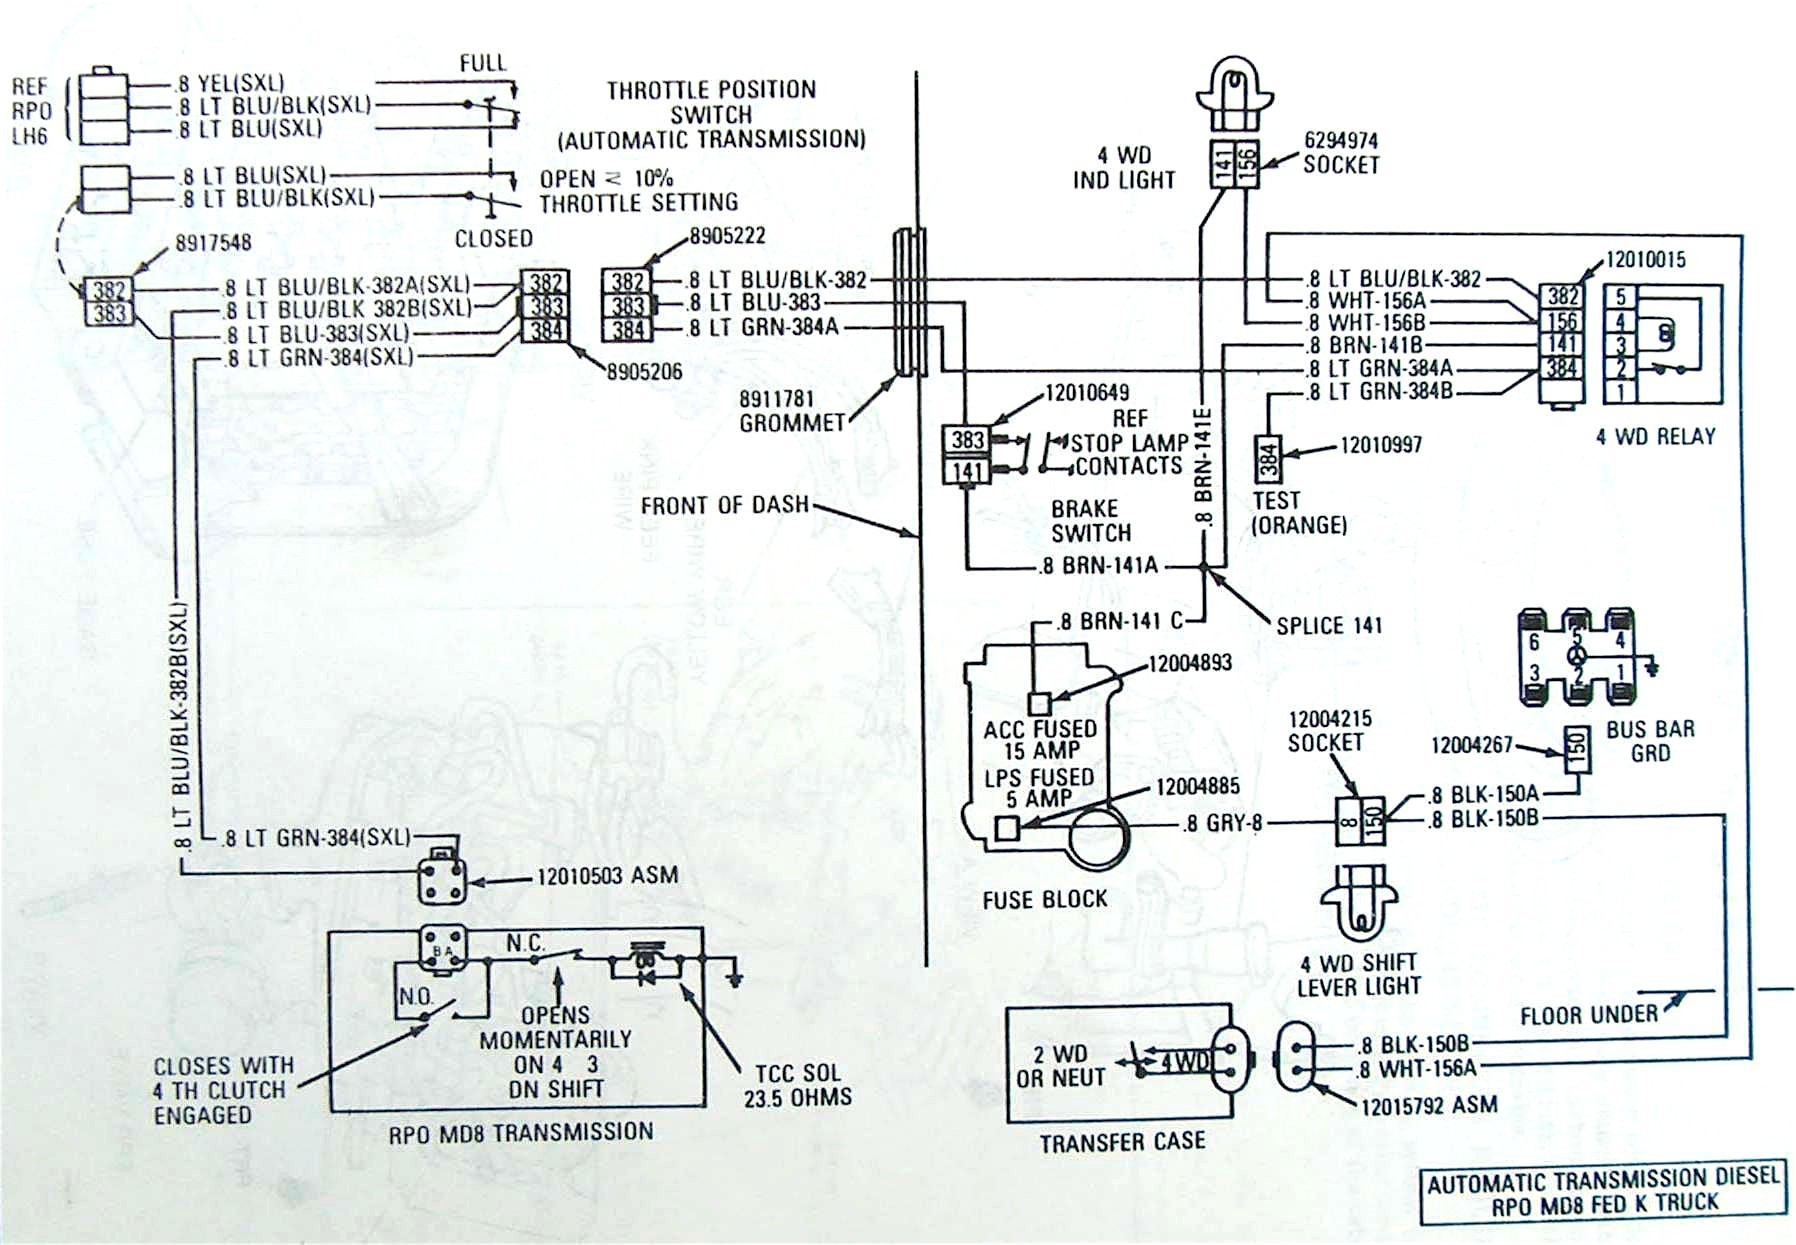 Torque Converter Diagram 4l60e 700r4 Wiring Wiring Center •